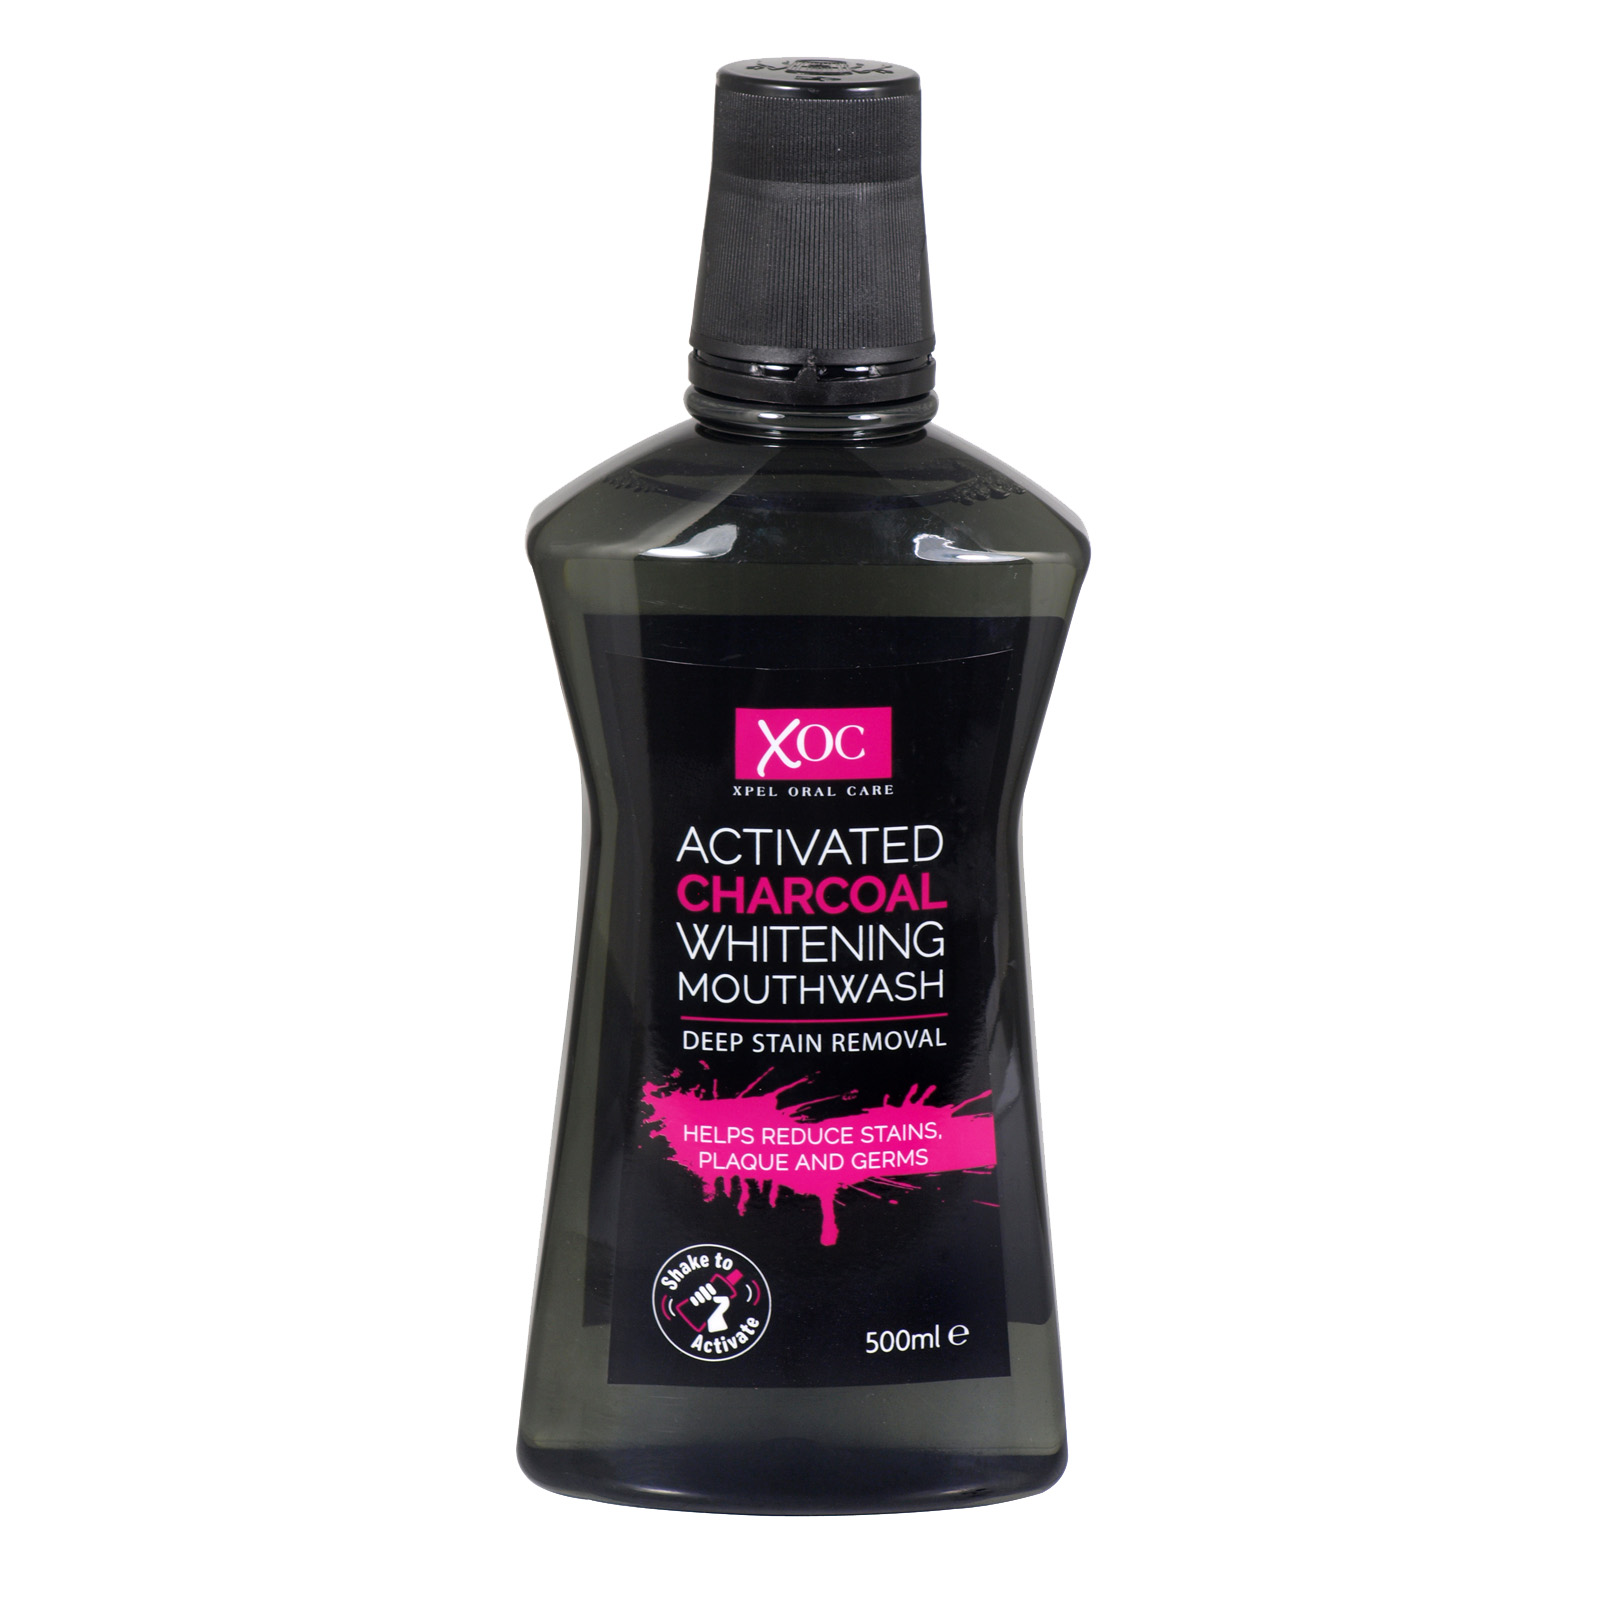 XOC ACTIVATED CHARCOAL WHITENING MOUTHWASH 500ML X12